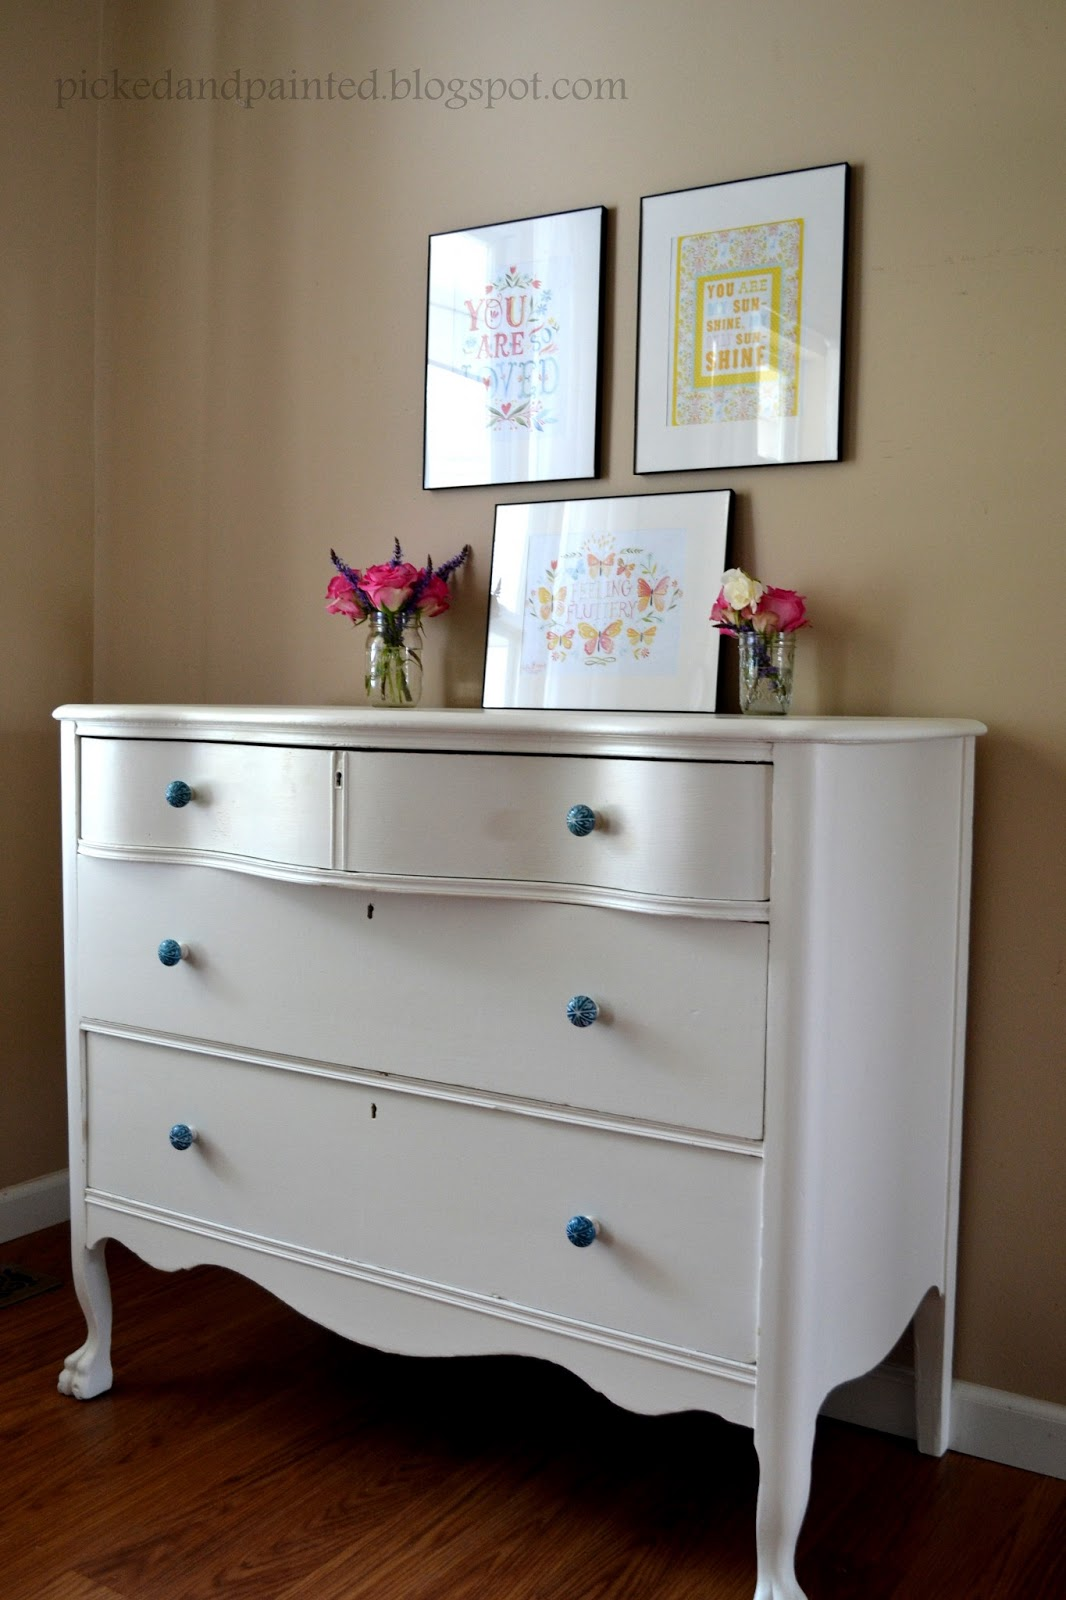 Helen Nichole Designs Keeping It In The Family Dresser Makeover